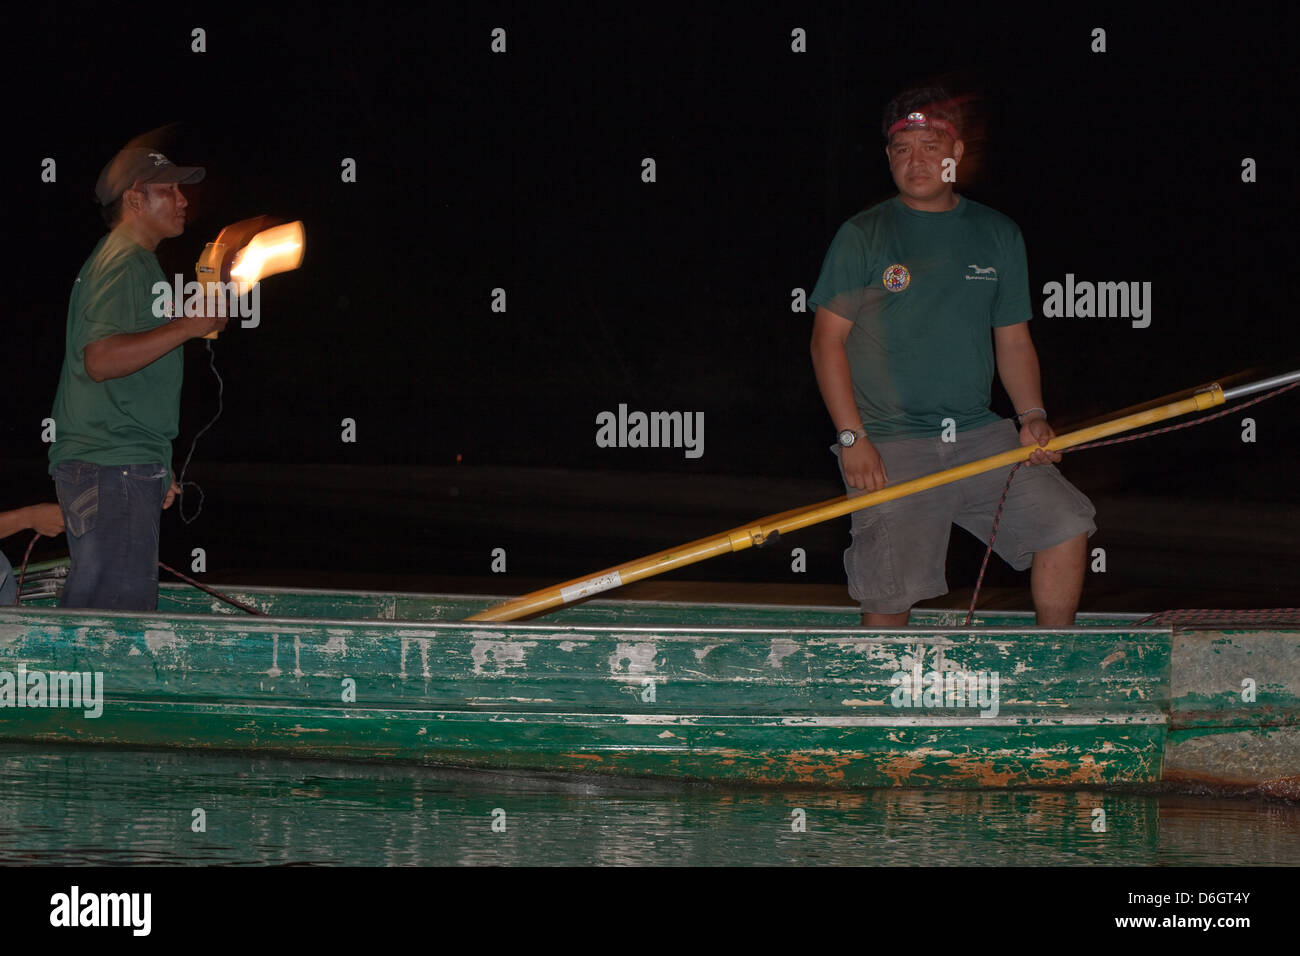 Guide And Researcher On A Boat Out Lamping For Caiman With Spotlight With  The Intention Of Catching Individuals Data Collection